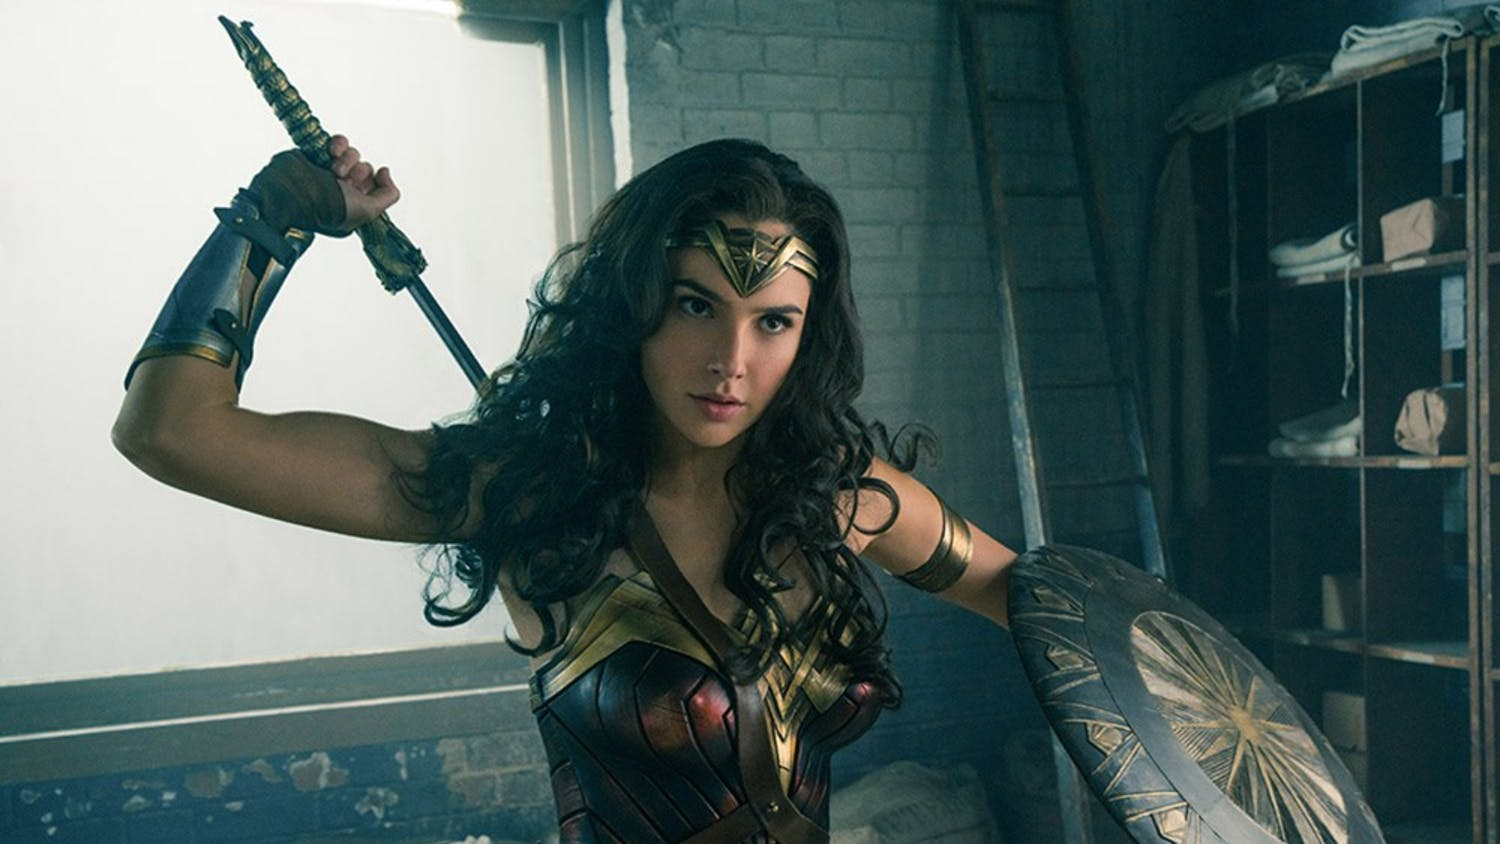 """Doesn't Gal Gadot look awesome in """"Wonder Woman""""? But writers can do bad things even with good characters. (Clay Enos/Warner Bros. Entertainment Inc./Ratpac-Dune Entertainment LLC)"""